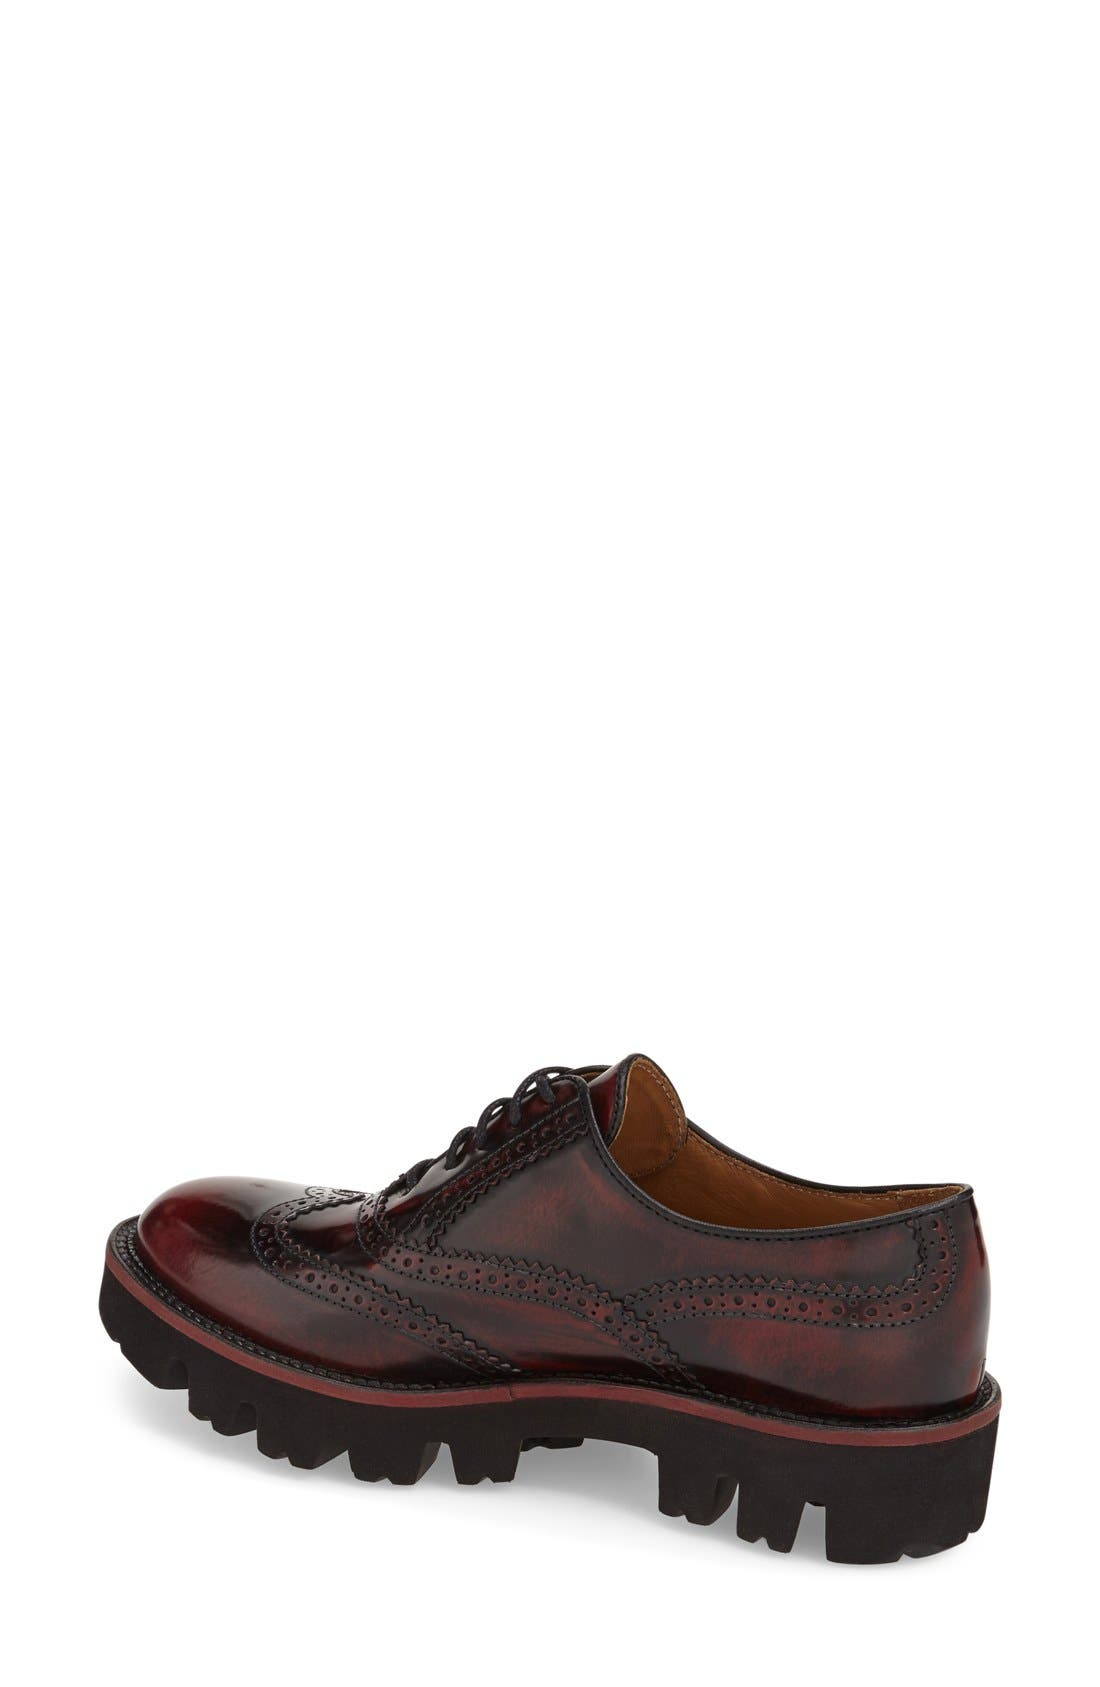 Alternate Image 2  - Rokail Wingtip Oxford (Women)